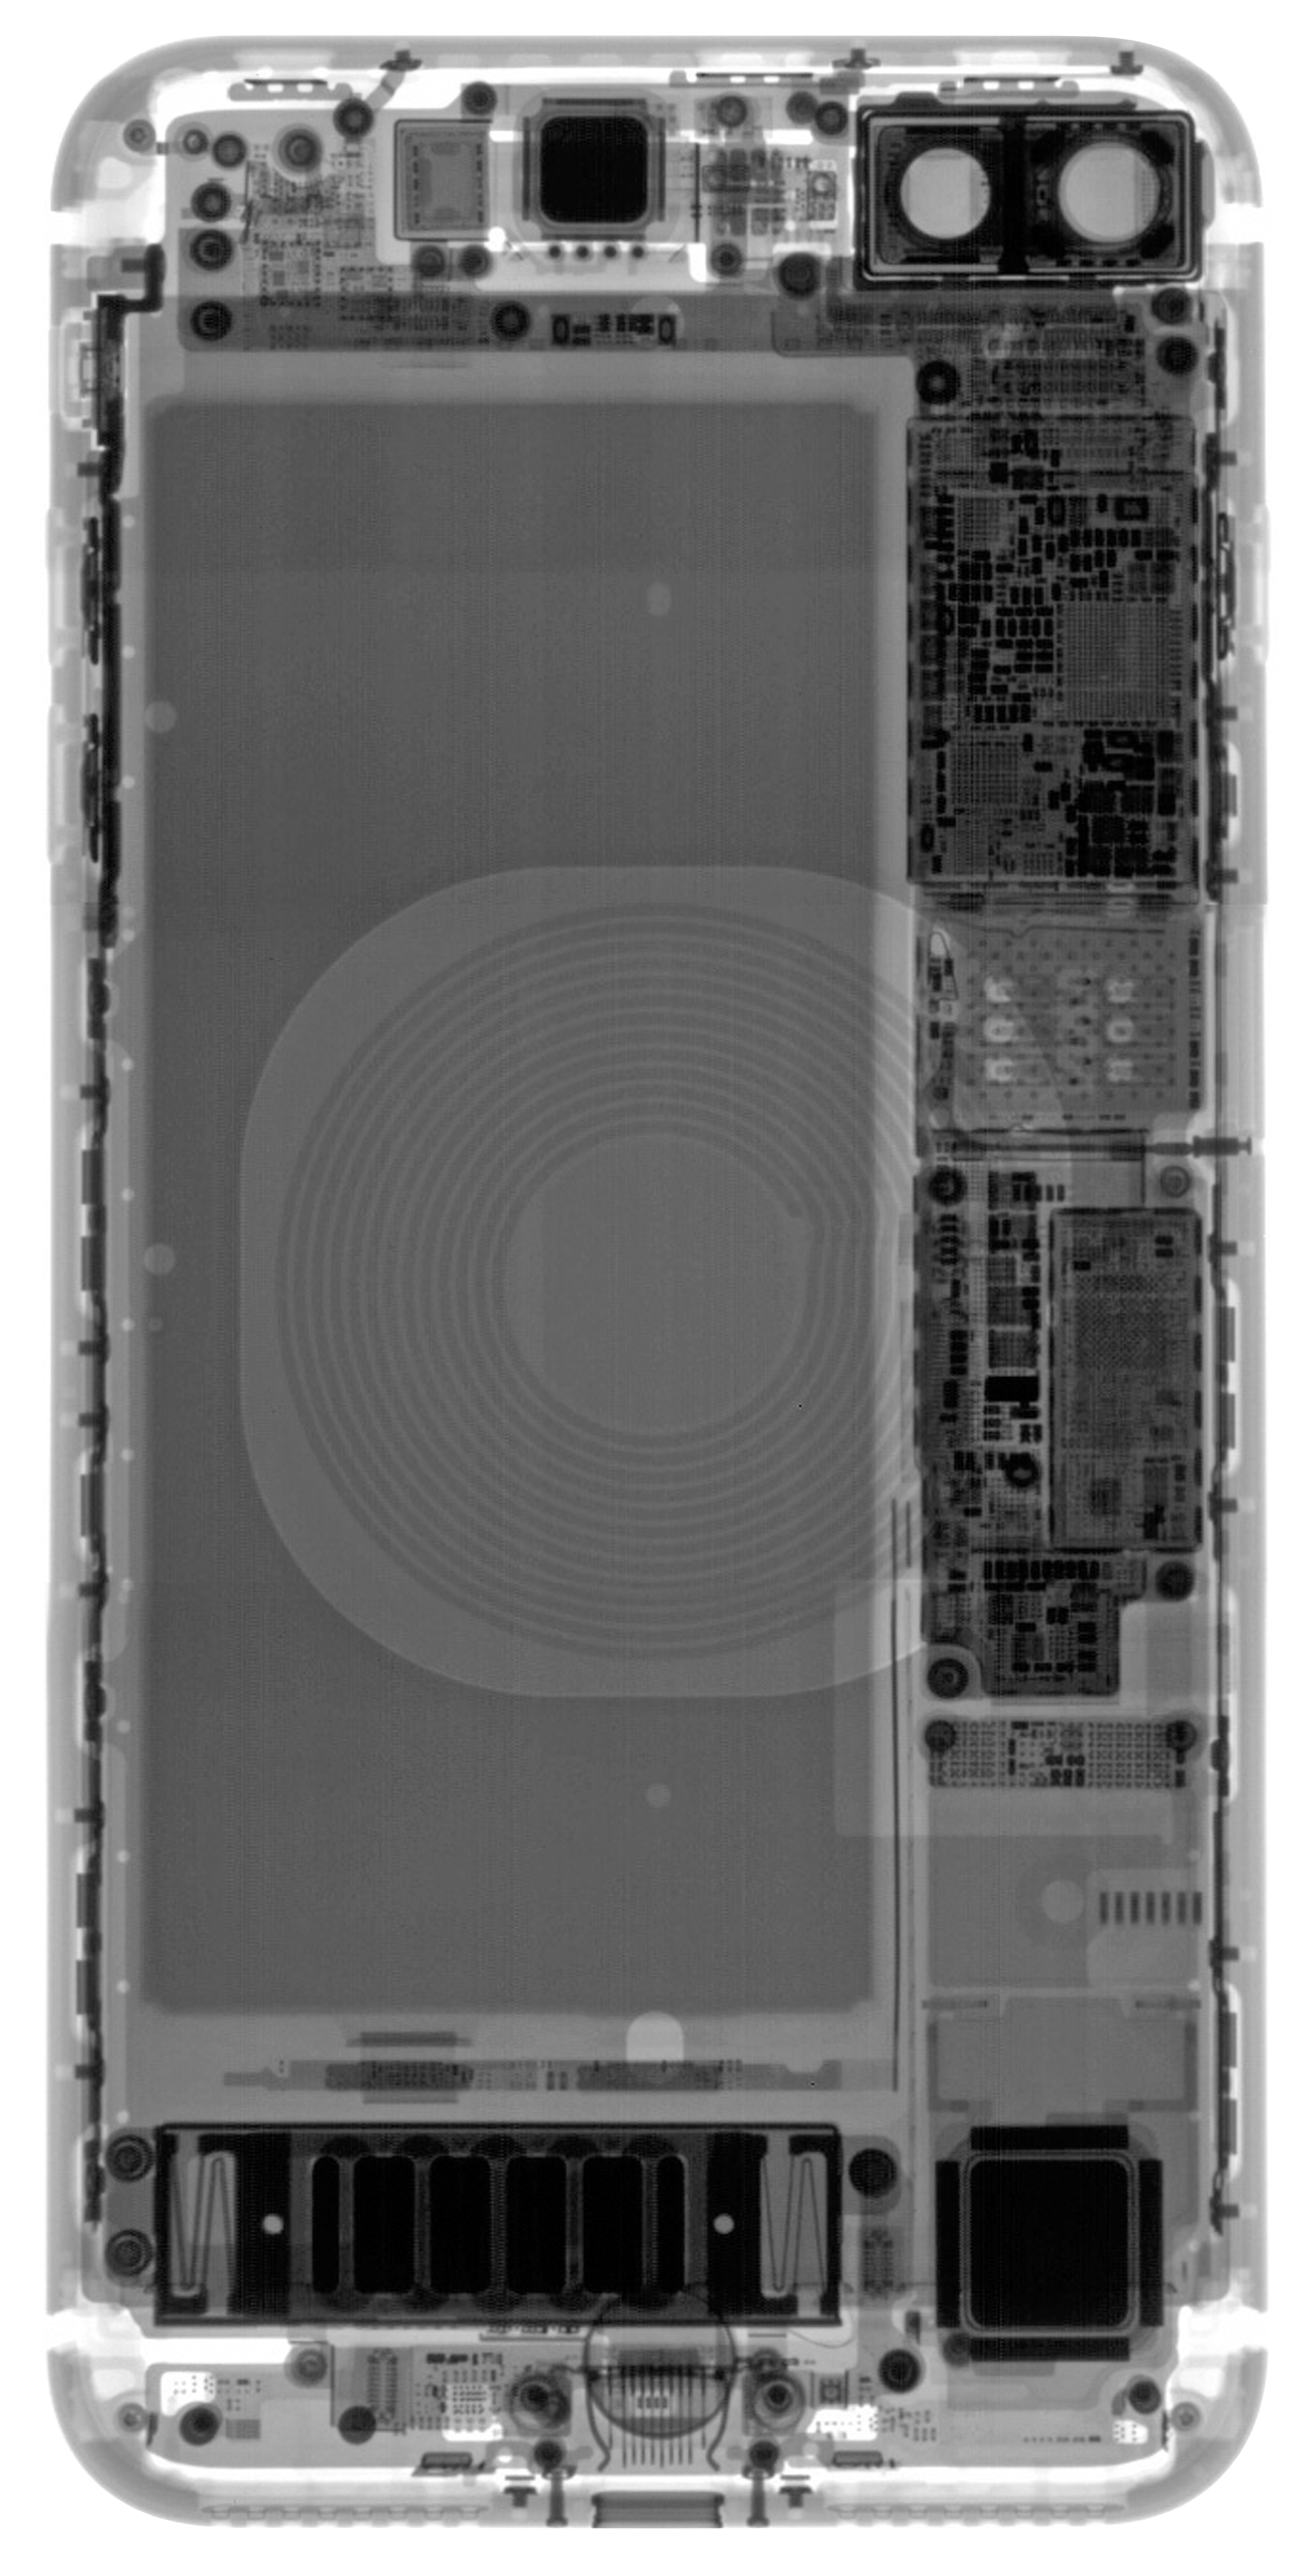 We Ve Got Your Iphone 8 Teardown Wallpapers Ifixit